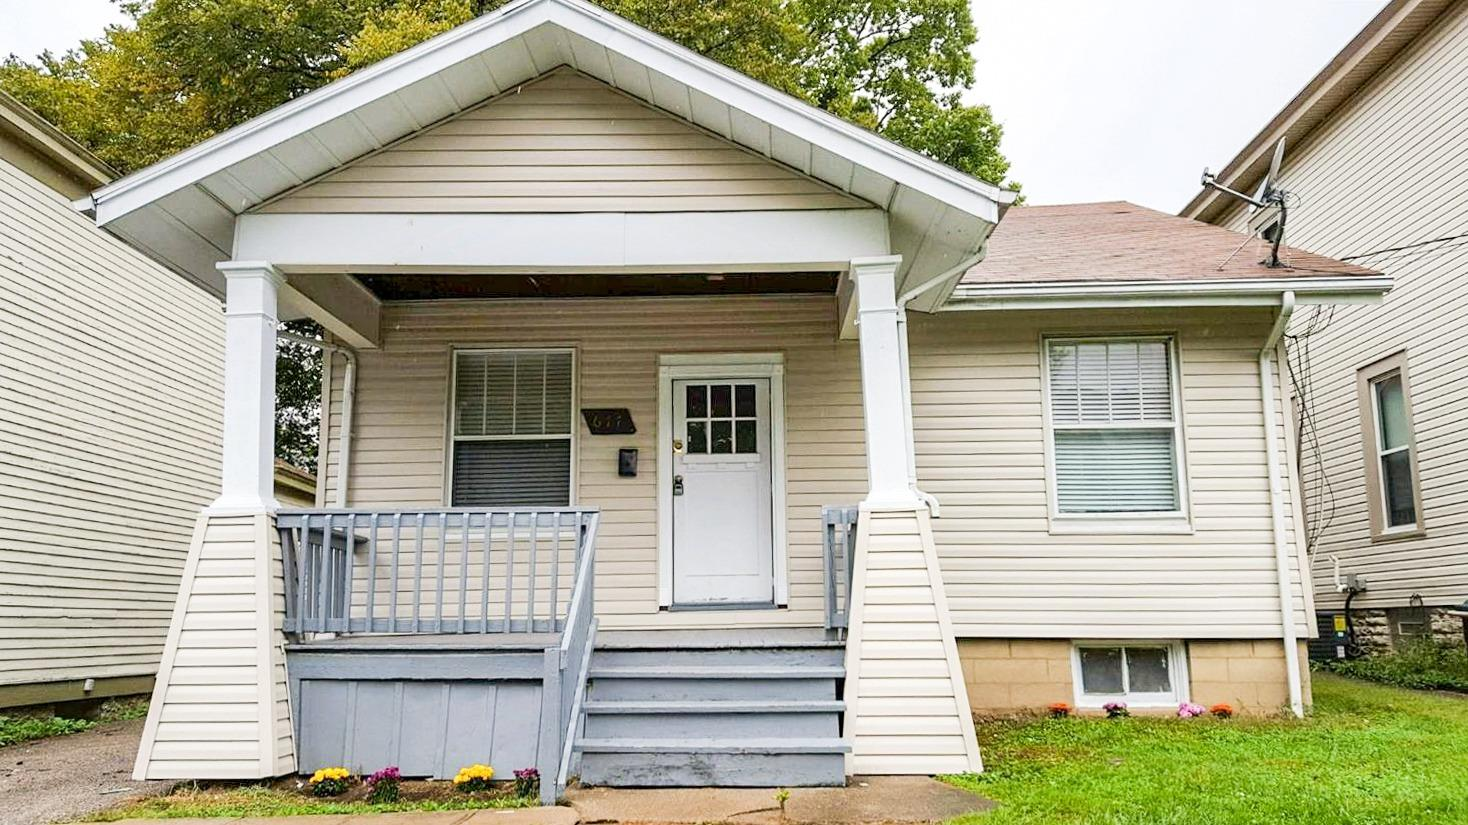 Photo 1 for 677 Hawthorne Ave Price Hill, OH 45205